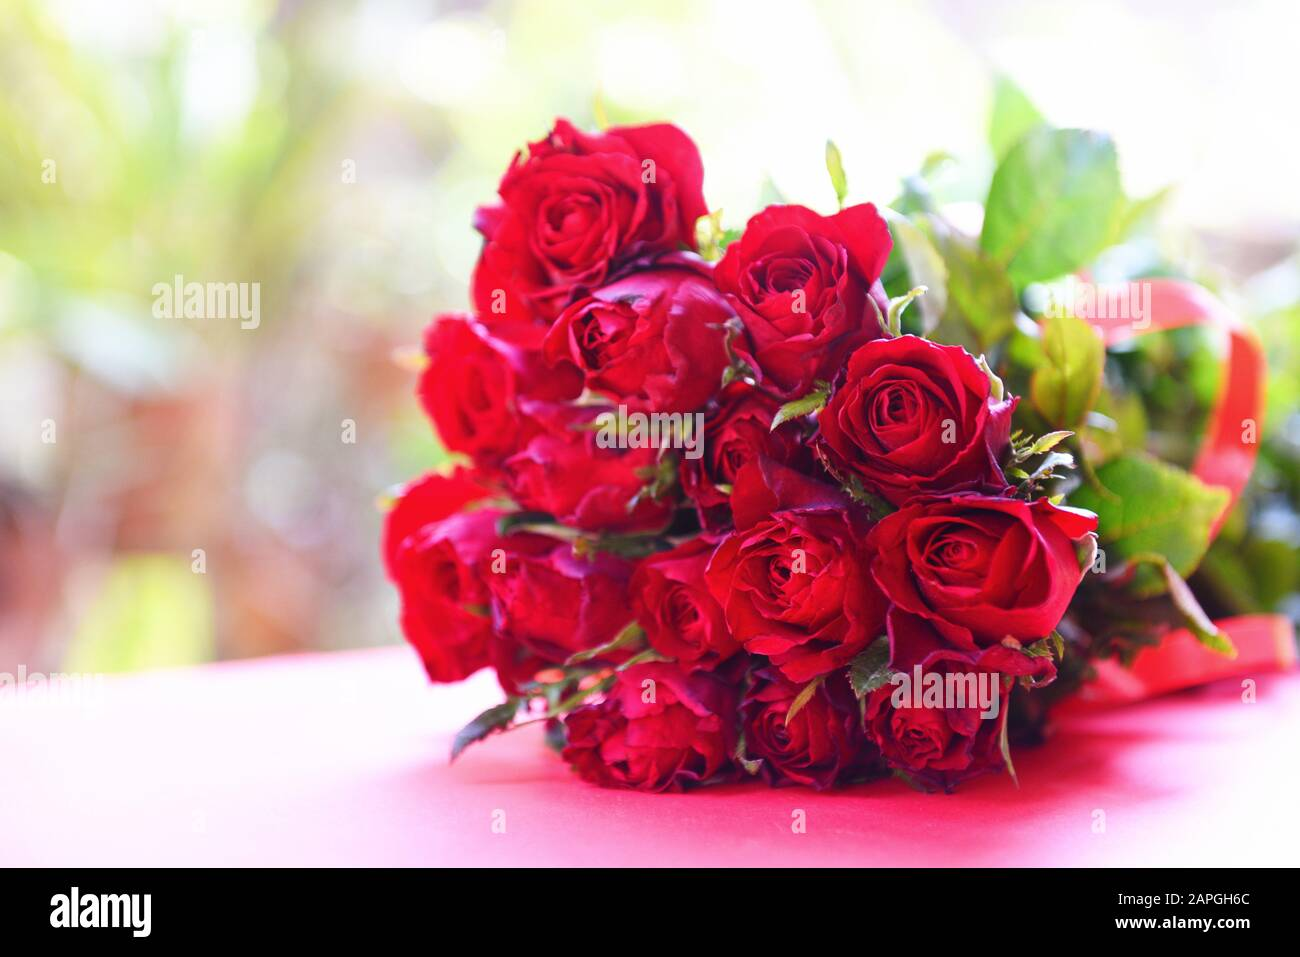 Natural Fresh Red Roses Flower Bouquet Nature Background Close Up Rose Flowers Romantic Love Valentine Day Concept Multicolored Flowers Bloom Stock Photo Alamy